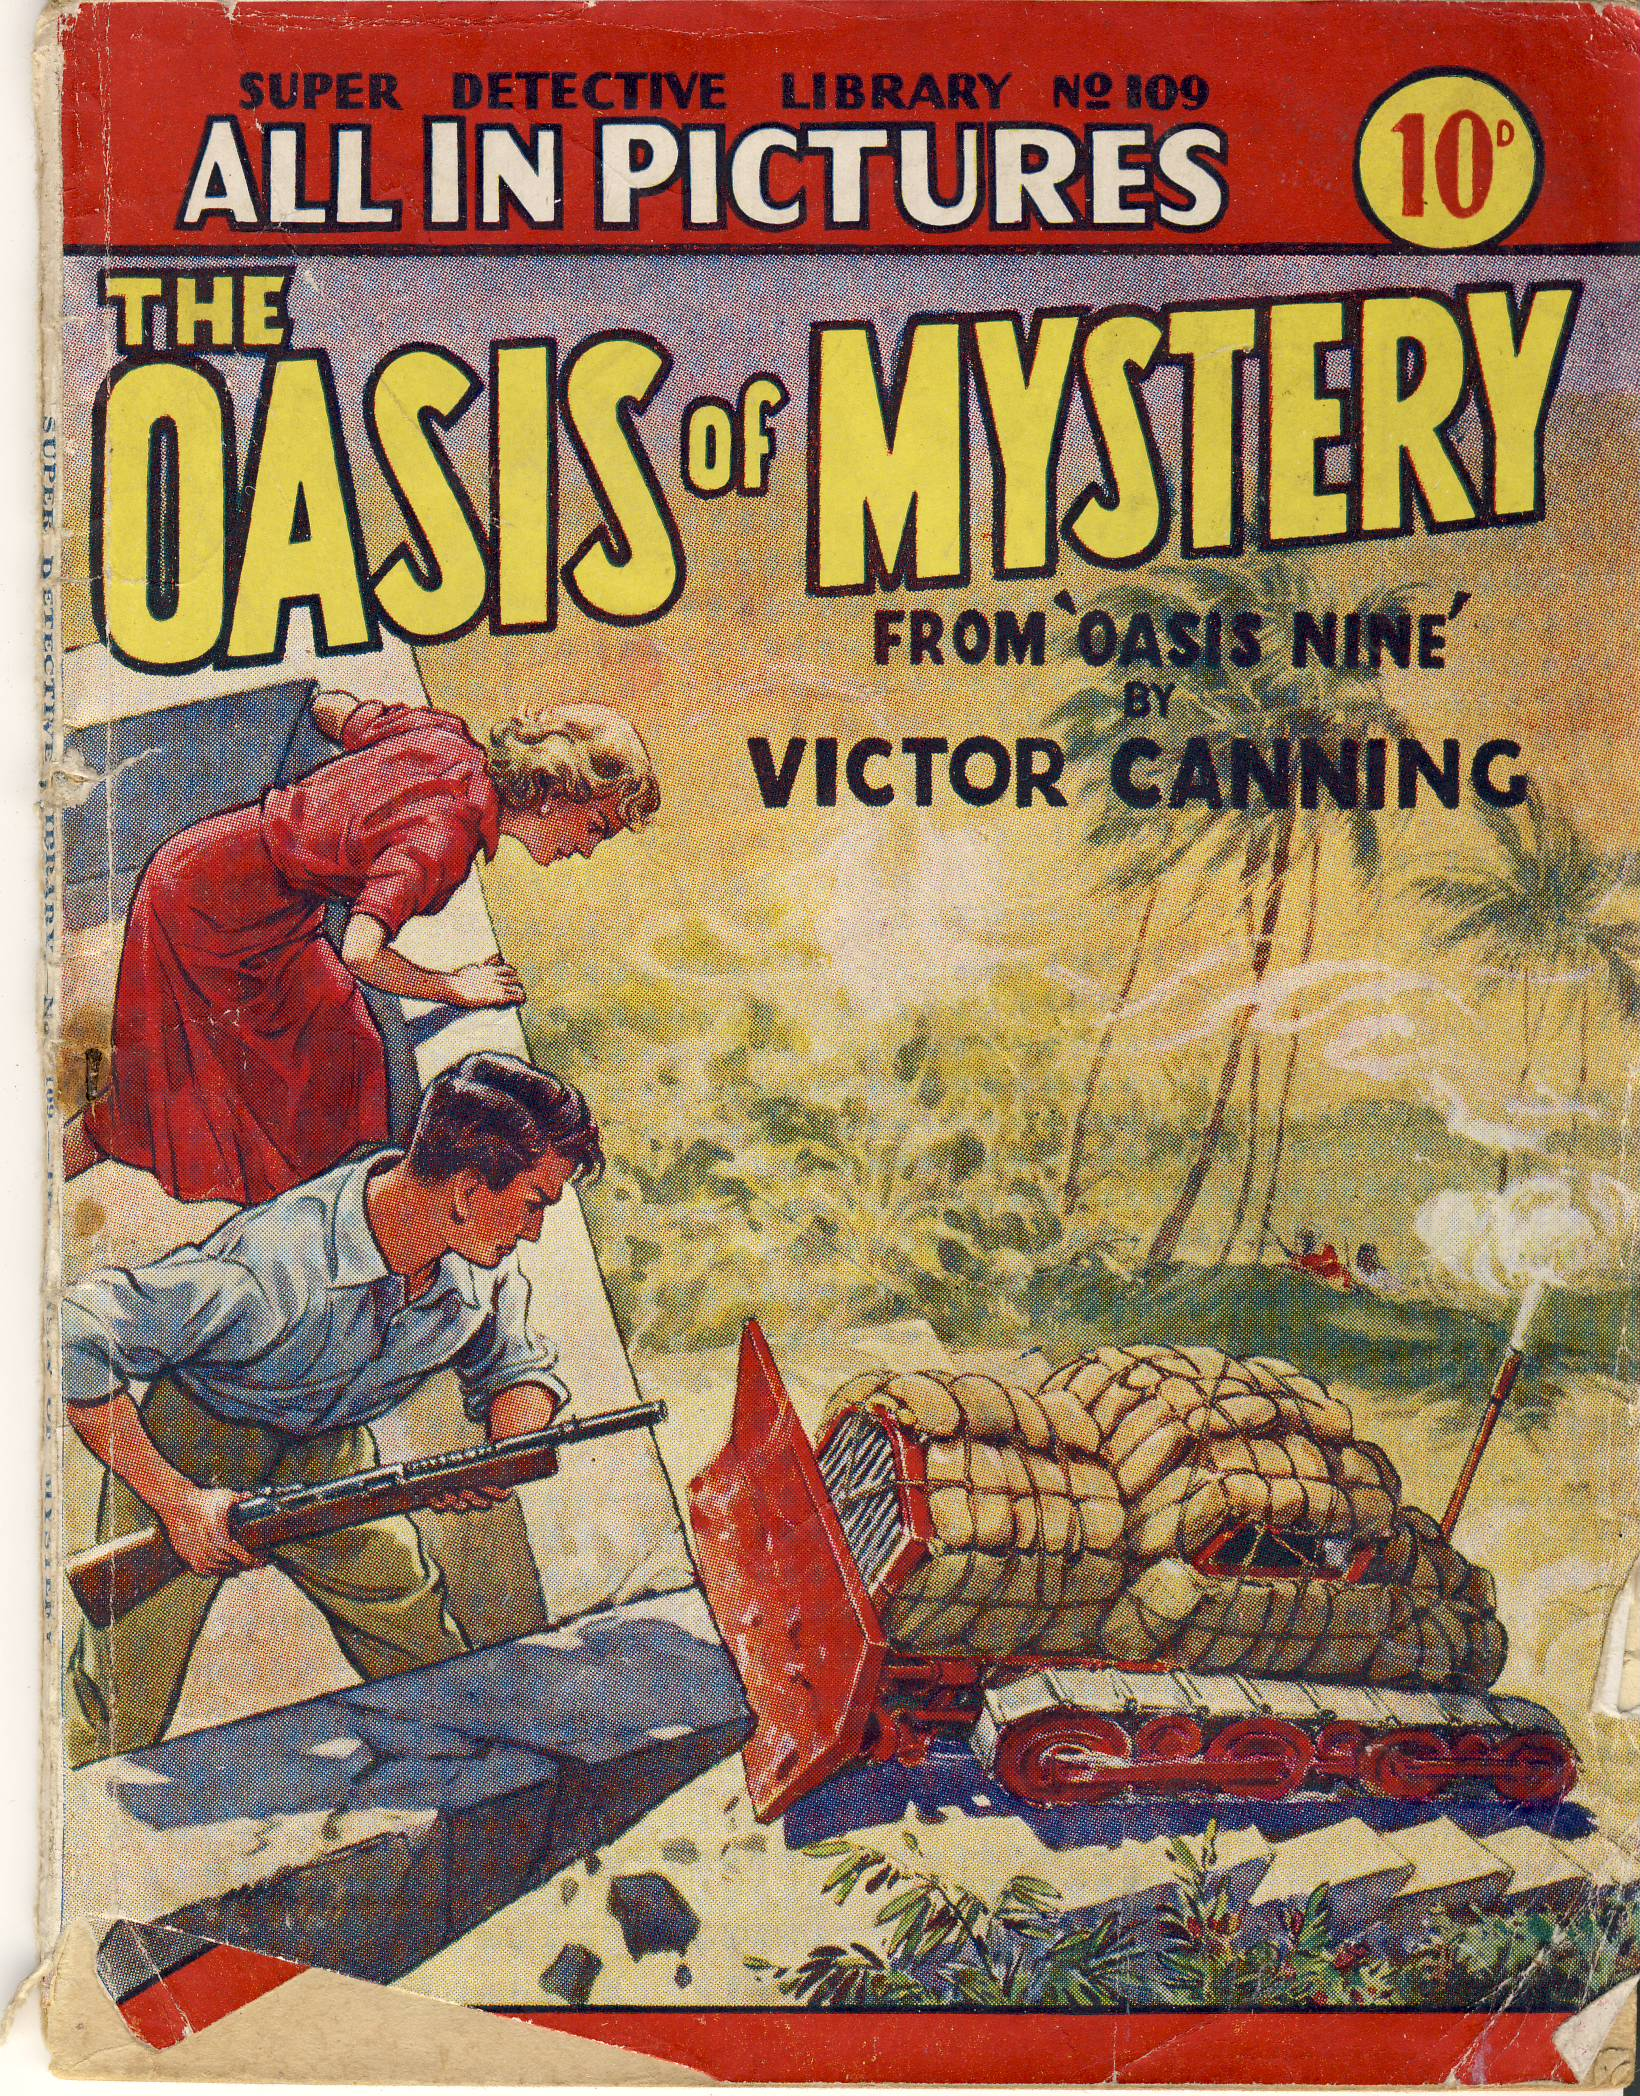 The Oasis of Mystery by Victor Canning SUPER DETECTIVE LIBRARY NO.109 All in Pictures vintage magazine refS5  a pre-owned vintage item in well read condition.